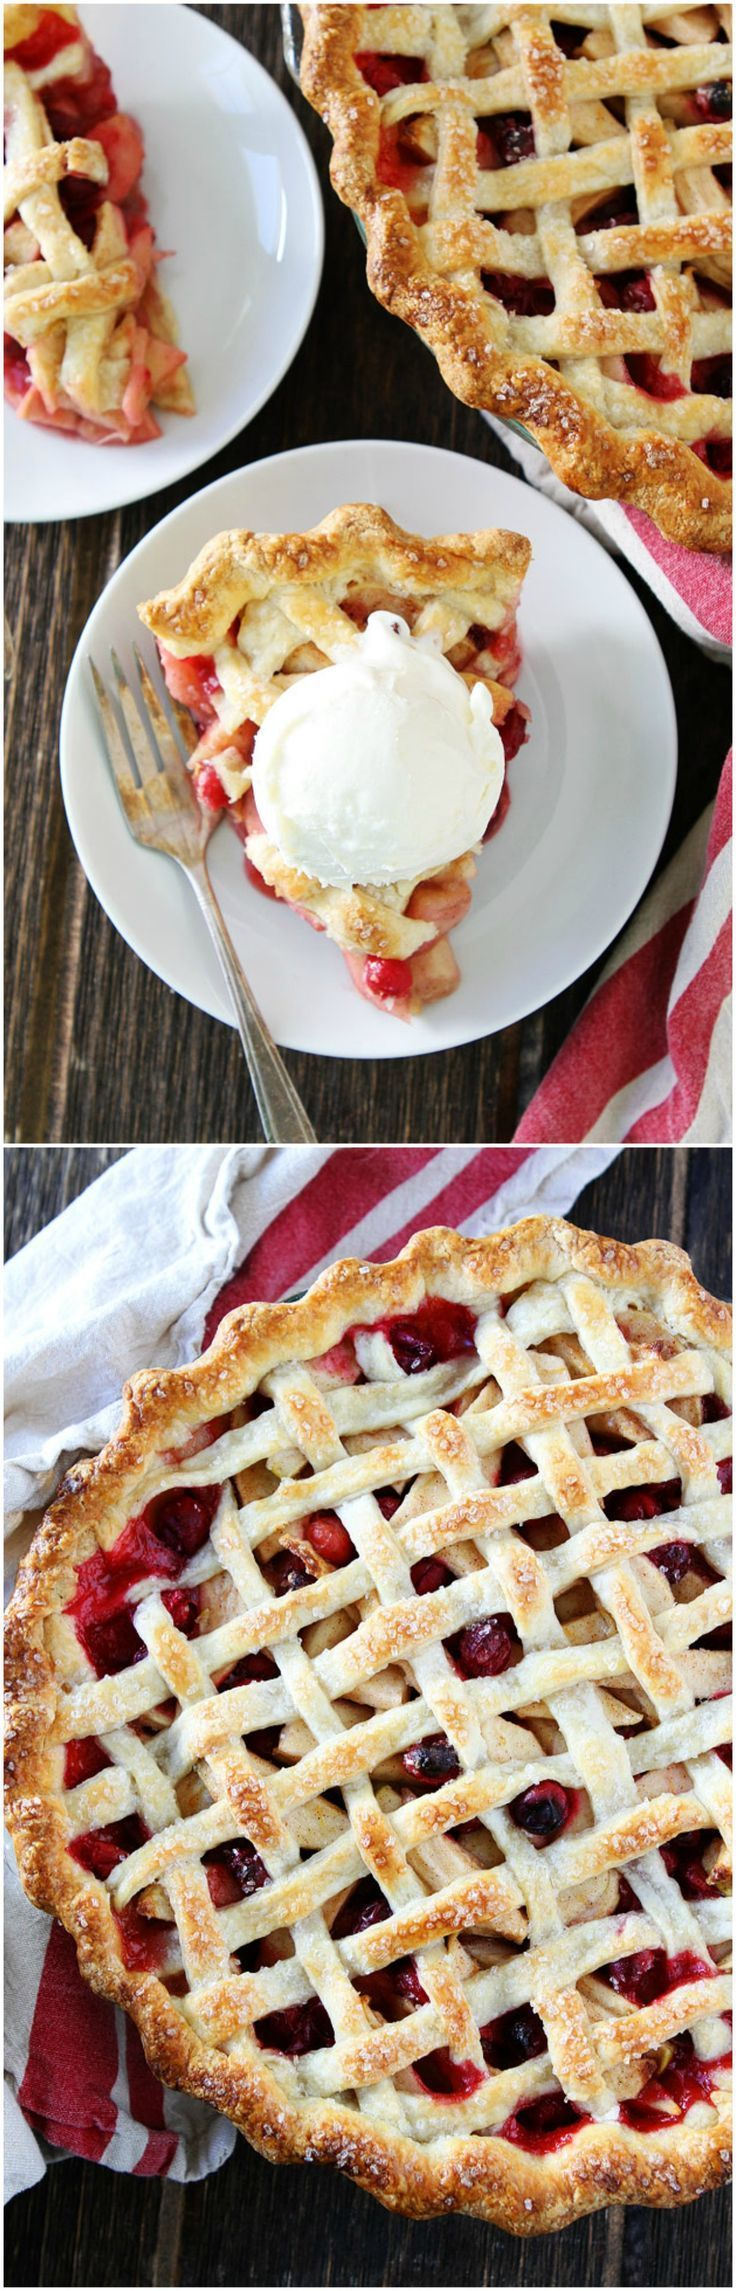 Apple Cranberry Pie Recipe on http://twopeasandtheirpod.com Flaky, buttery pie crust filled with apples and fresh cranberries. This is the perfect holiday dessert!